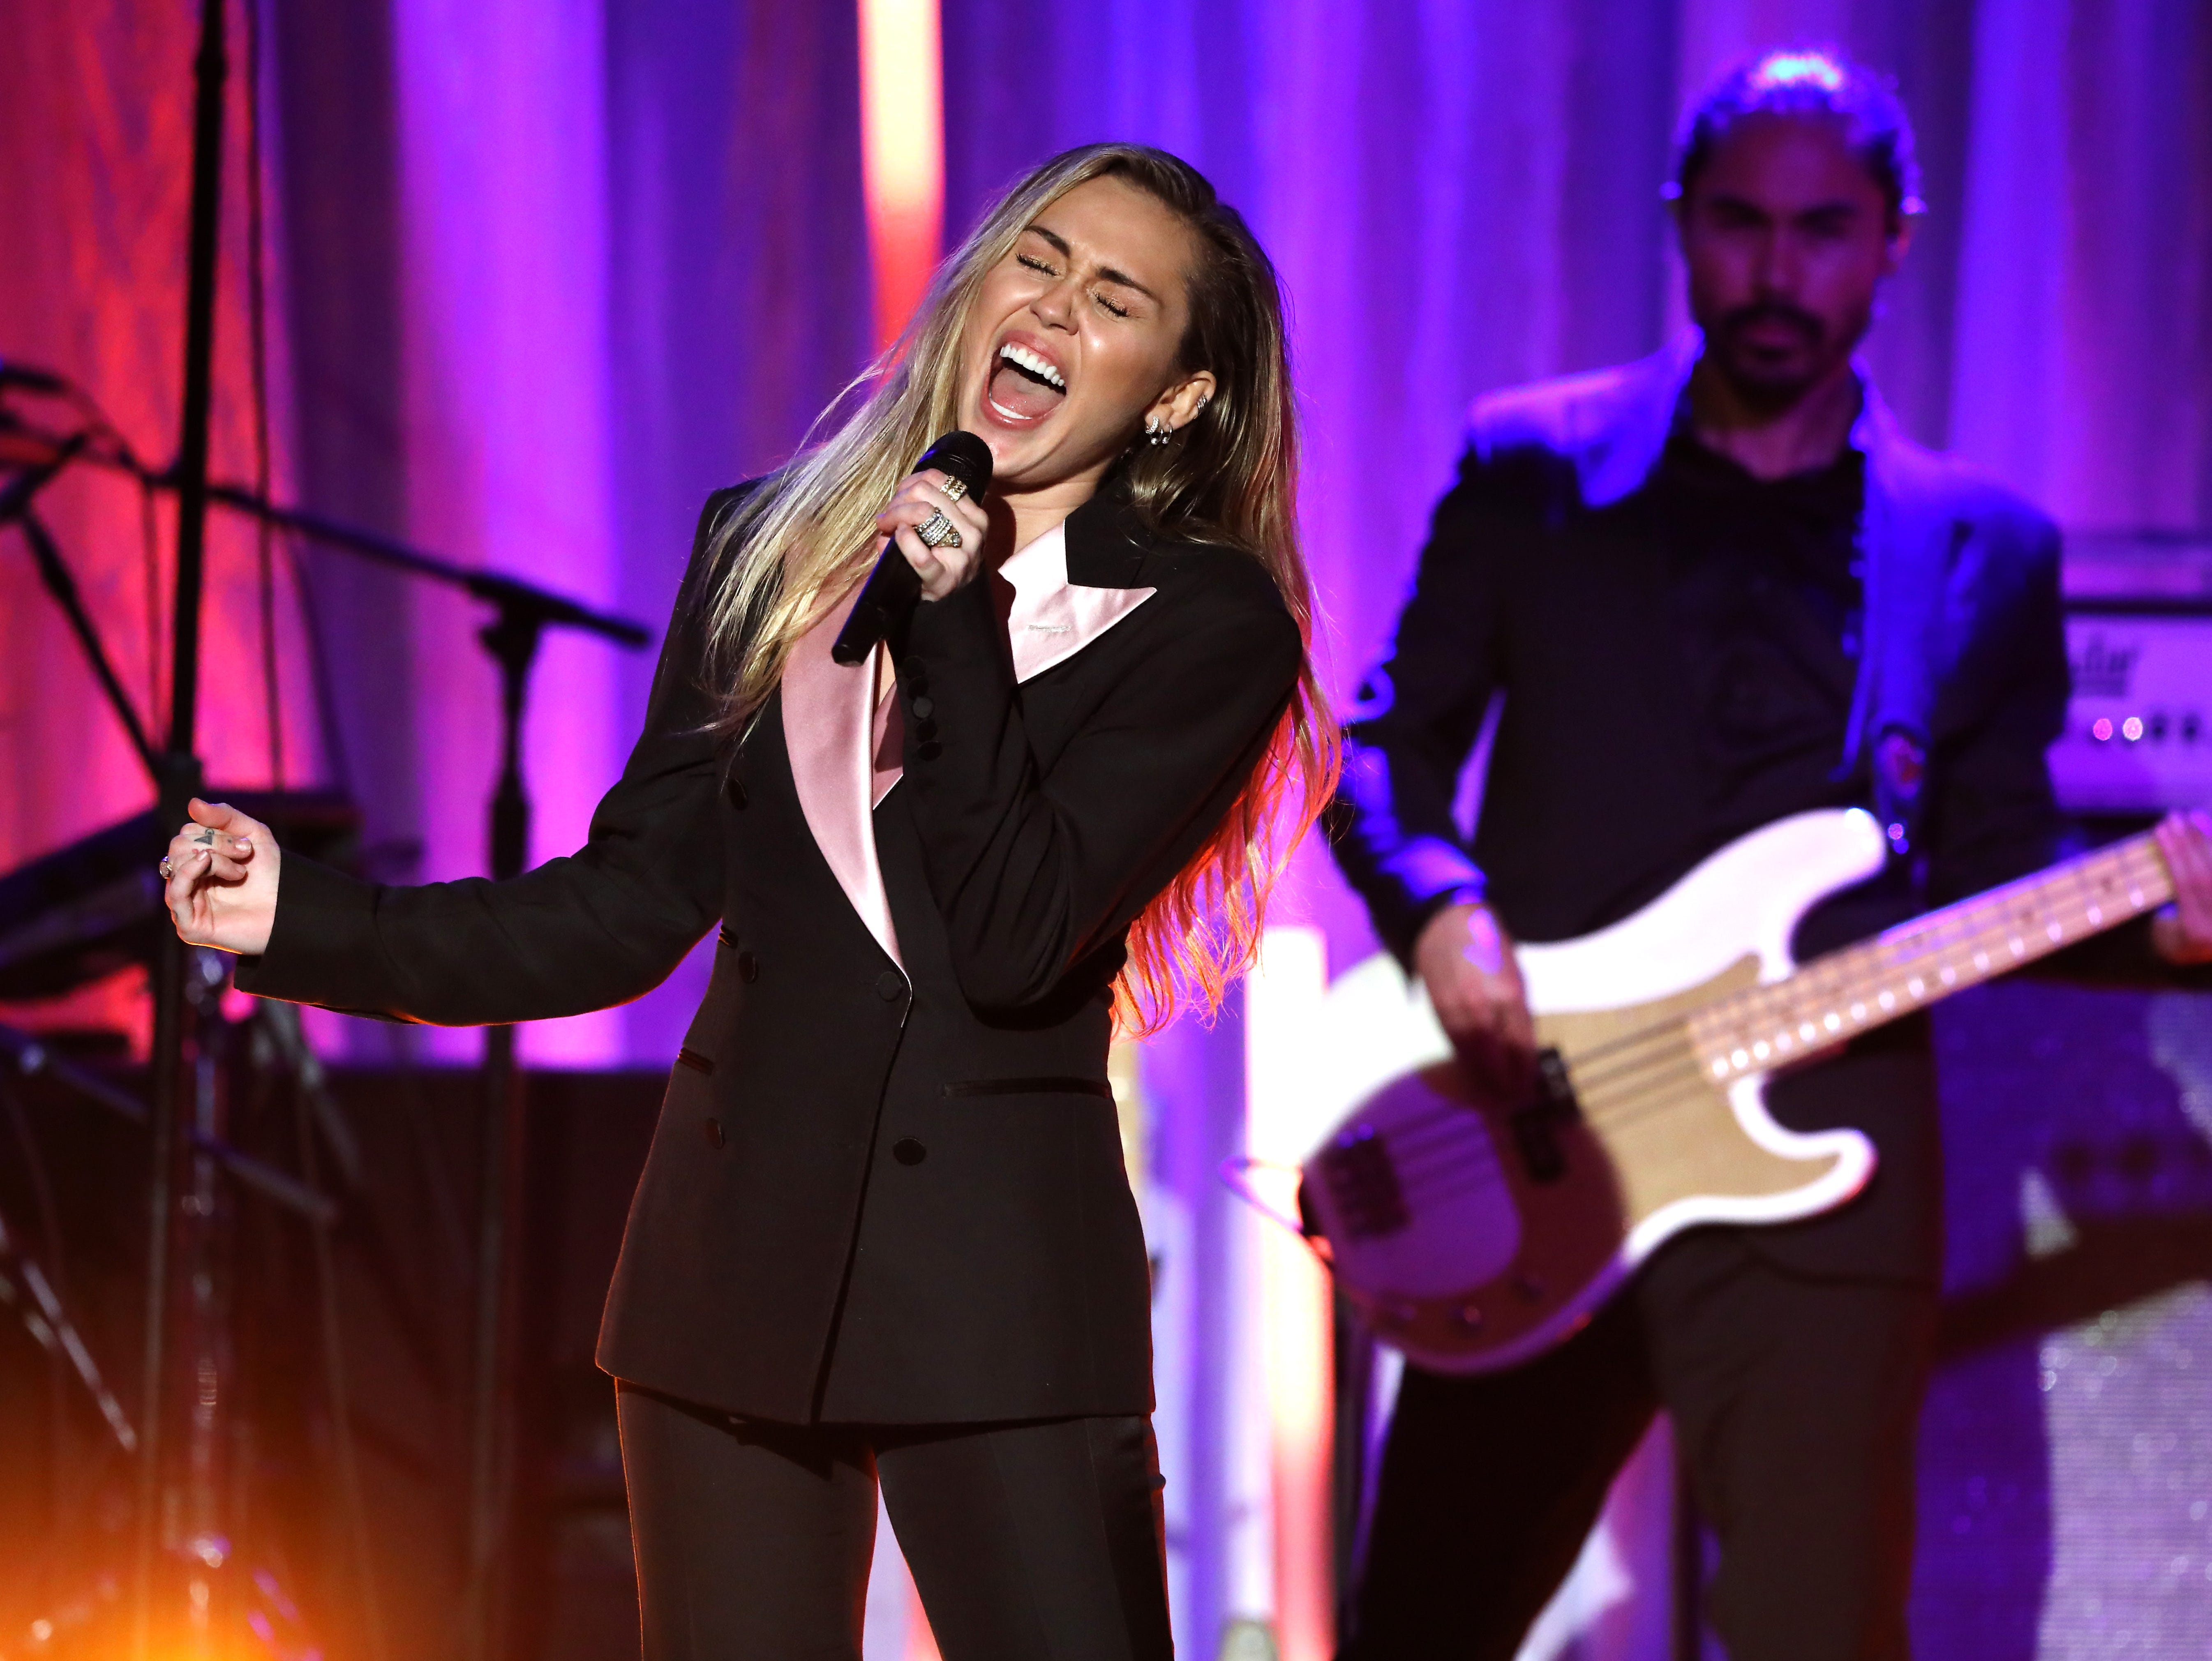 "BEVERLY HILLS, CA - FEBRUARY 28:  Miley Cyrus performs onstage during WCRF's ""An Unforgettable Evening"" at the Beverly Wilshire Four Seasons Hotel on February 28, 2019 in Beverly Hills, California.  (Photo by Rachel Murray/Getty Images for WCRF) ORG XMIT: 775305179 ORIG FILE ID: 1128311961"